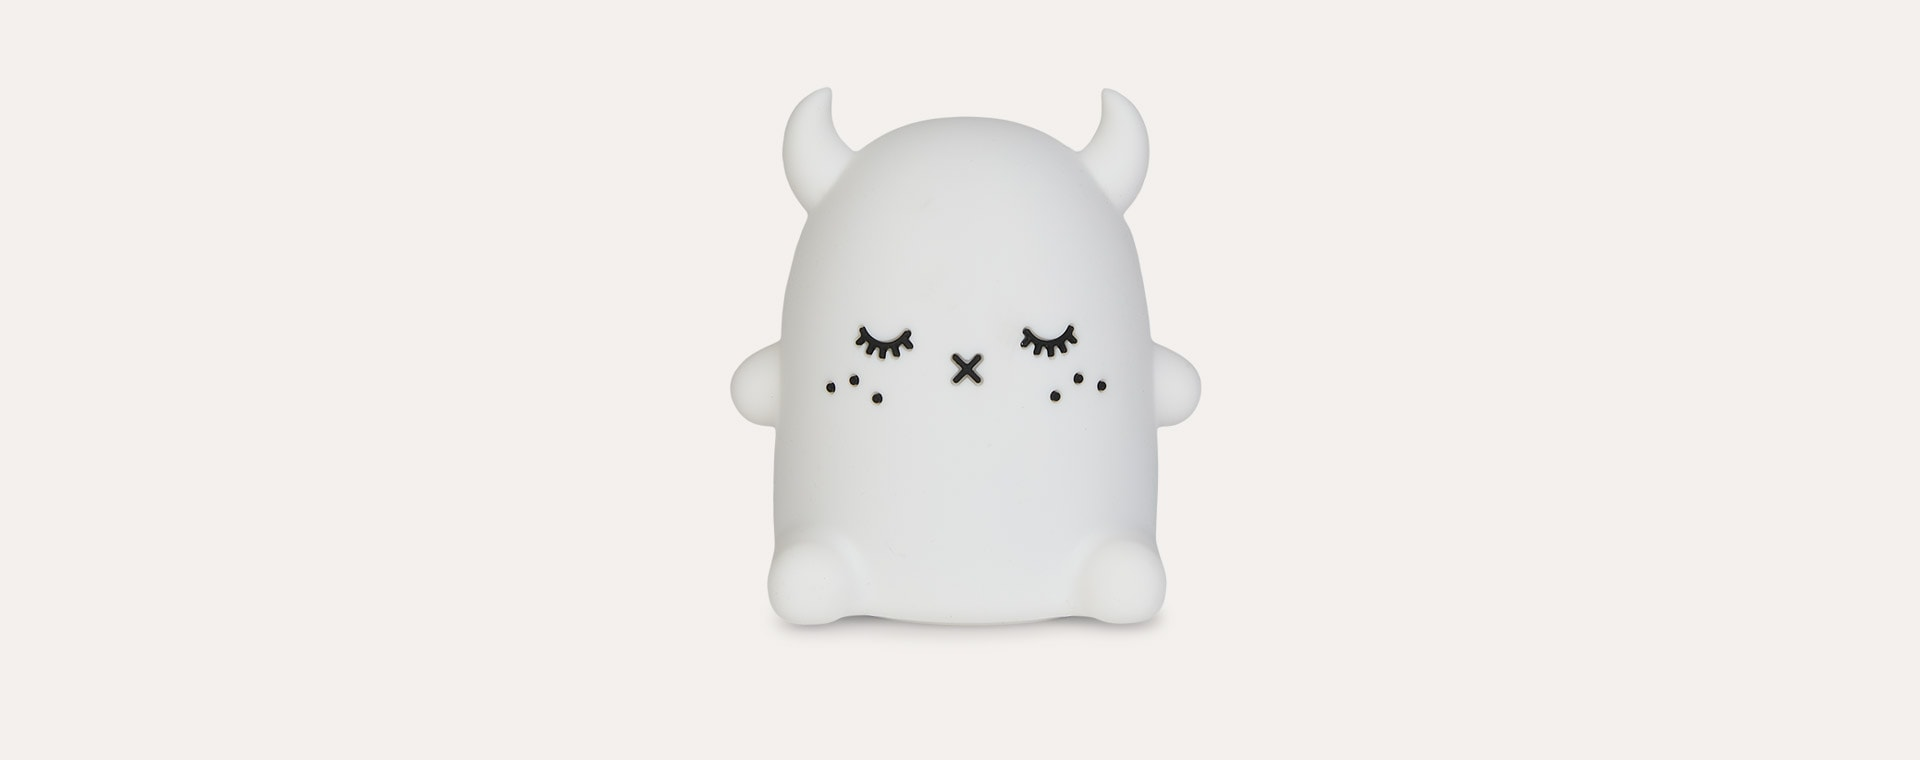 Whie Ricepuffy Noodoll Silicone Night Light